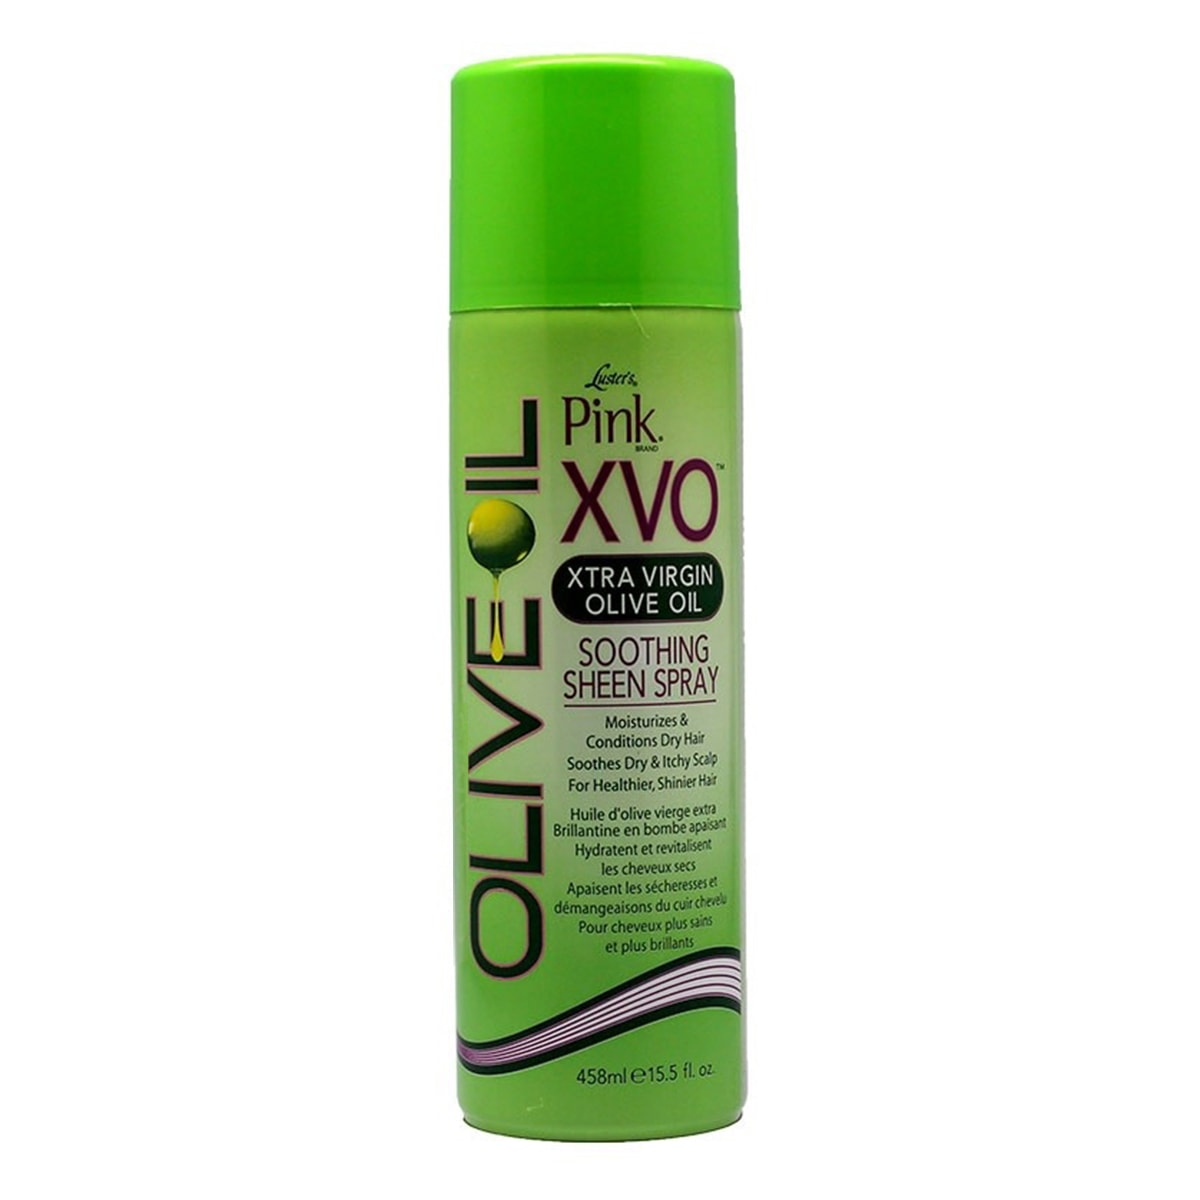 Buy Luster Pink XVO Xtra Virgin Olive Oil Soothing Sheen Spray - 458 ml